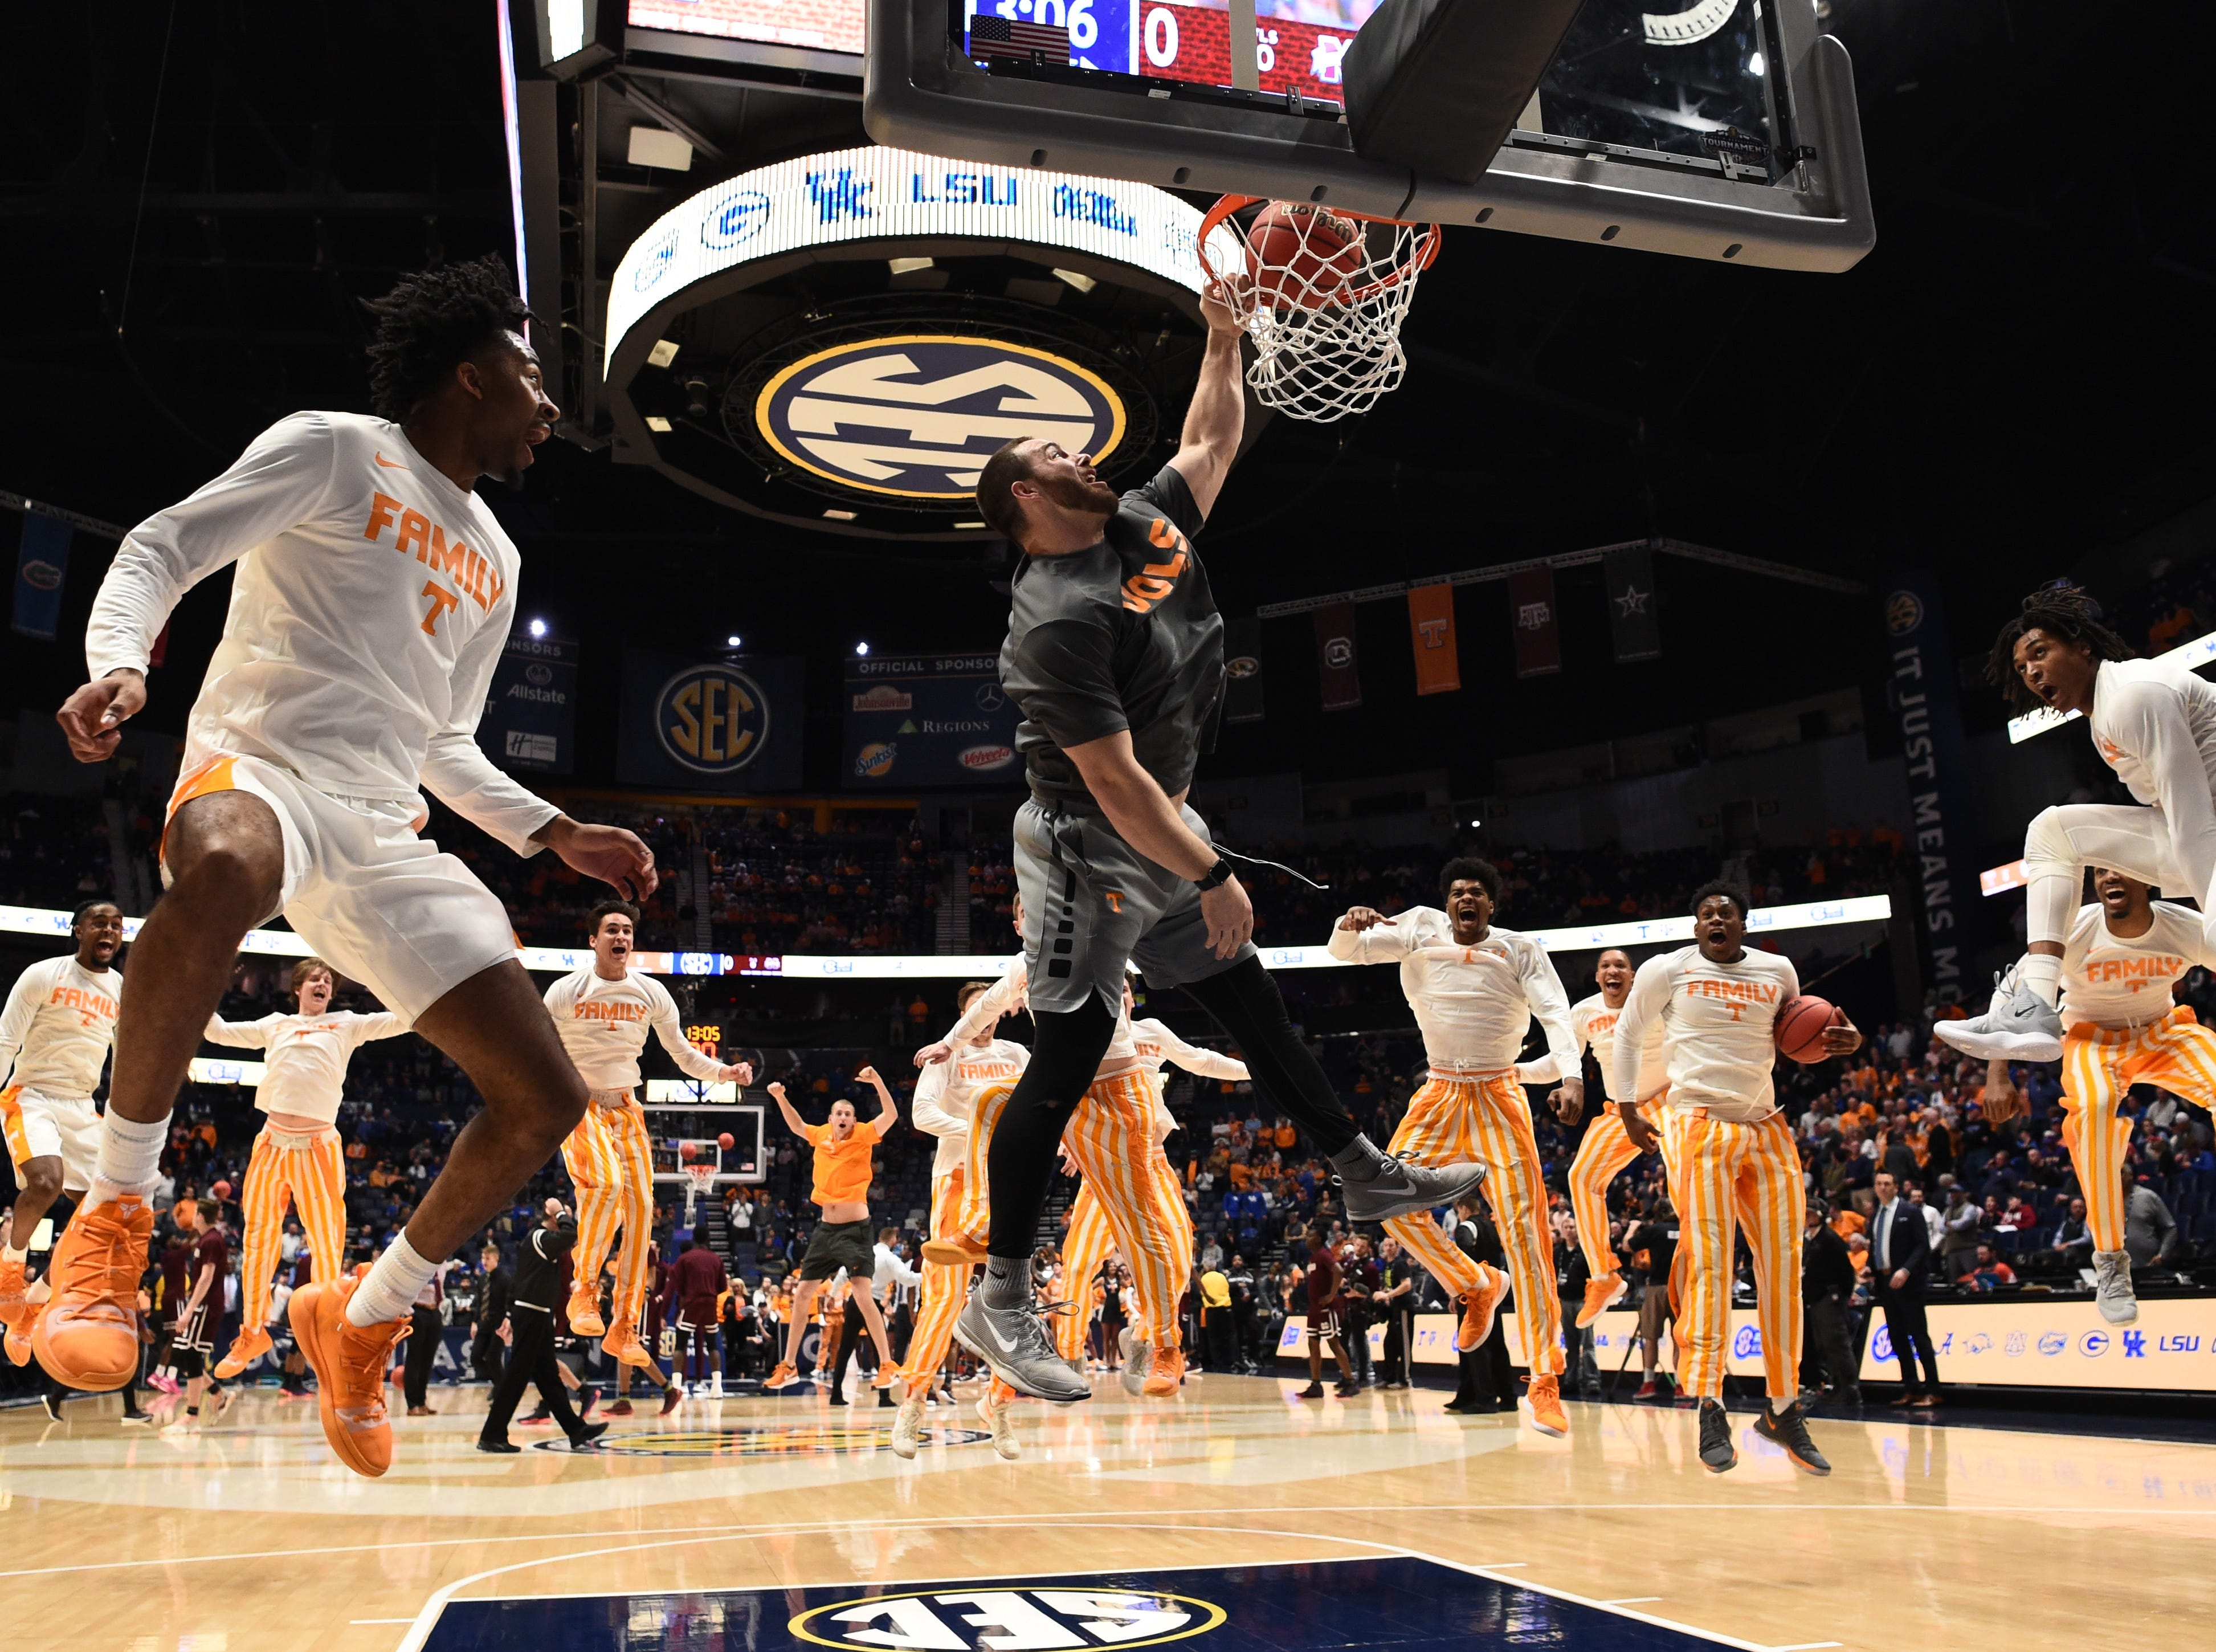 Tennessee players warm up before the SEC Men's Basketball Tournament game against Mississippi State at Bridgestone Arena in Nashville, Tenn., Friday, March 15, 2019.